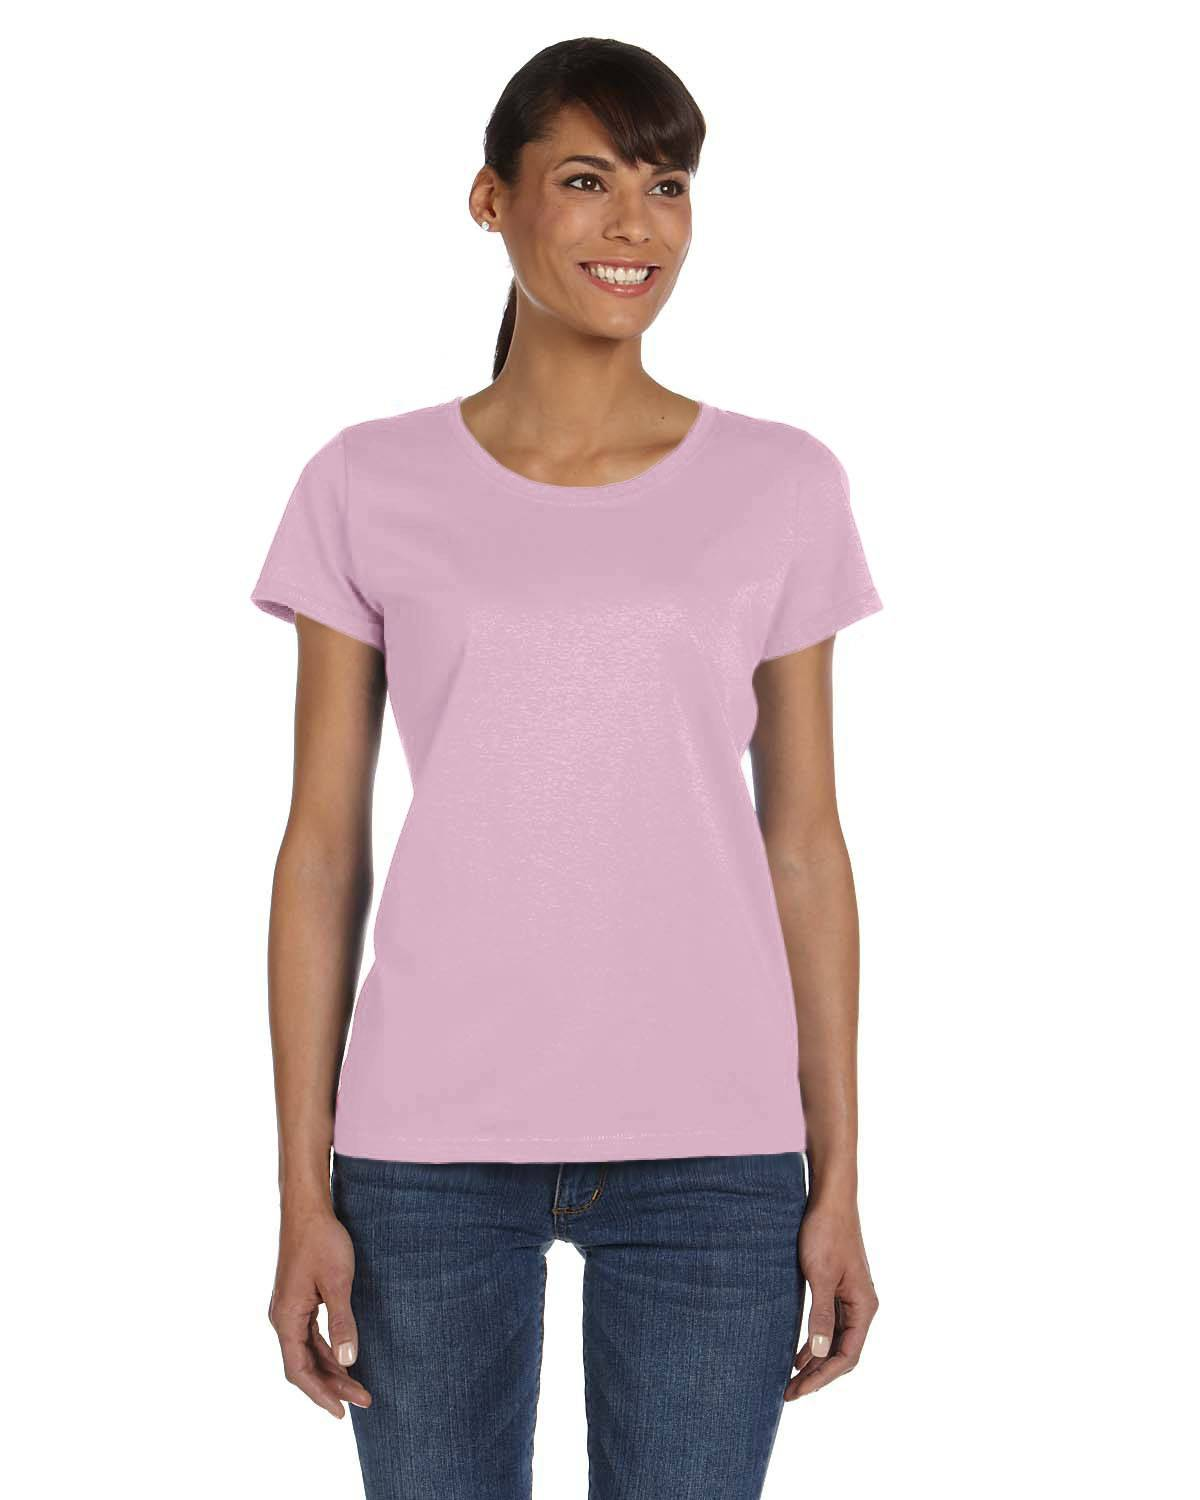 Fruit of the Loom Ladies' 8.3 oz./lin. yd. HD CottonTM T-Shirt | L3930R